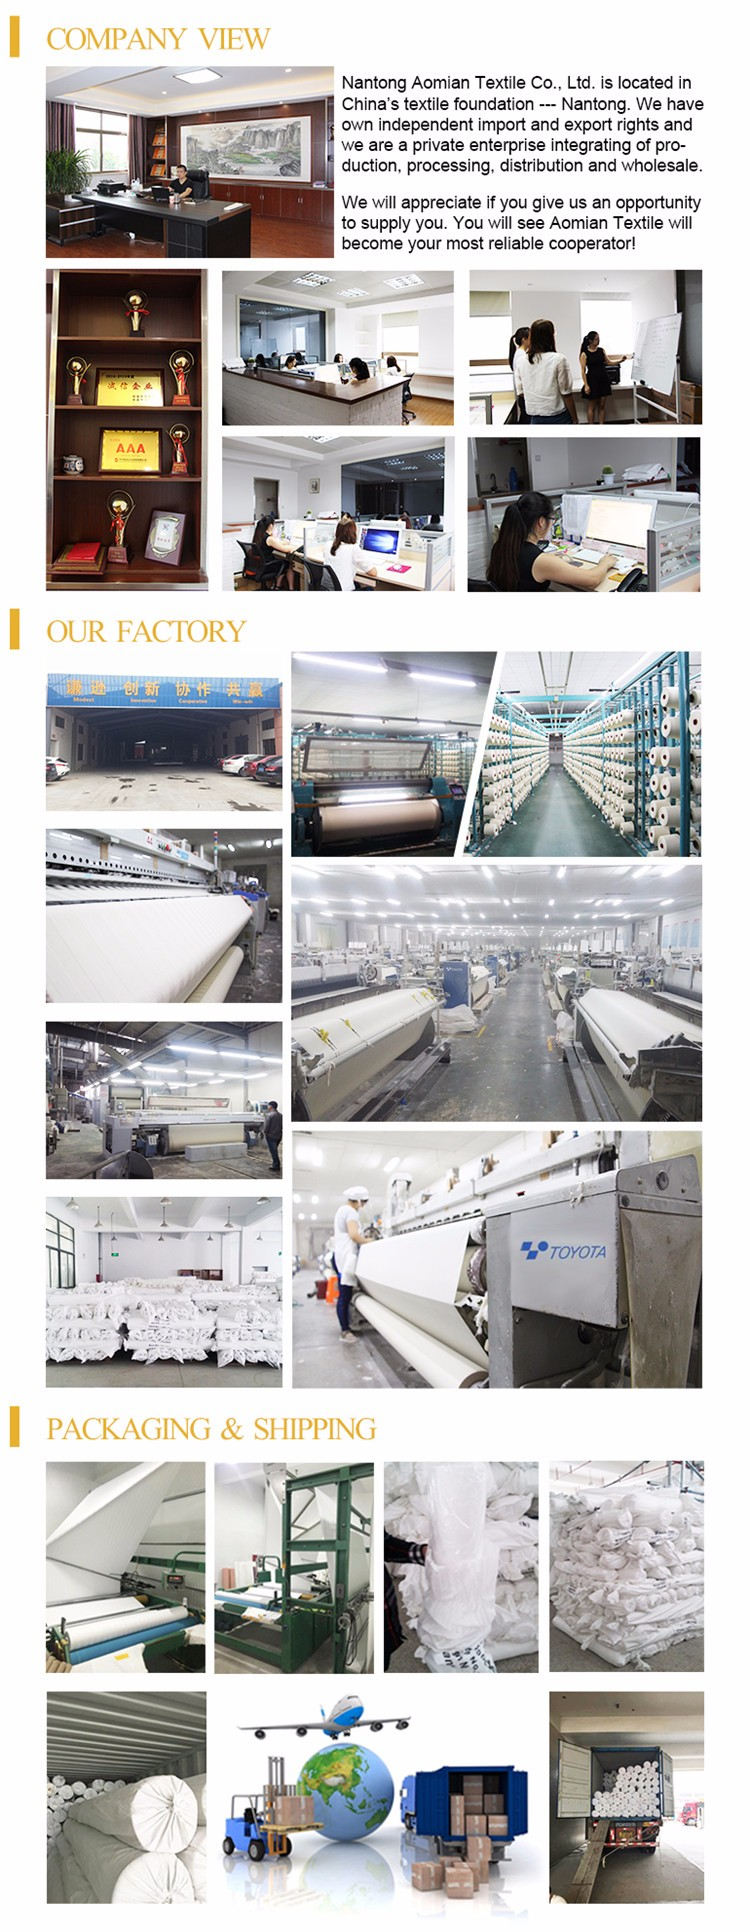 company view + factory + packaging.jpg